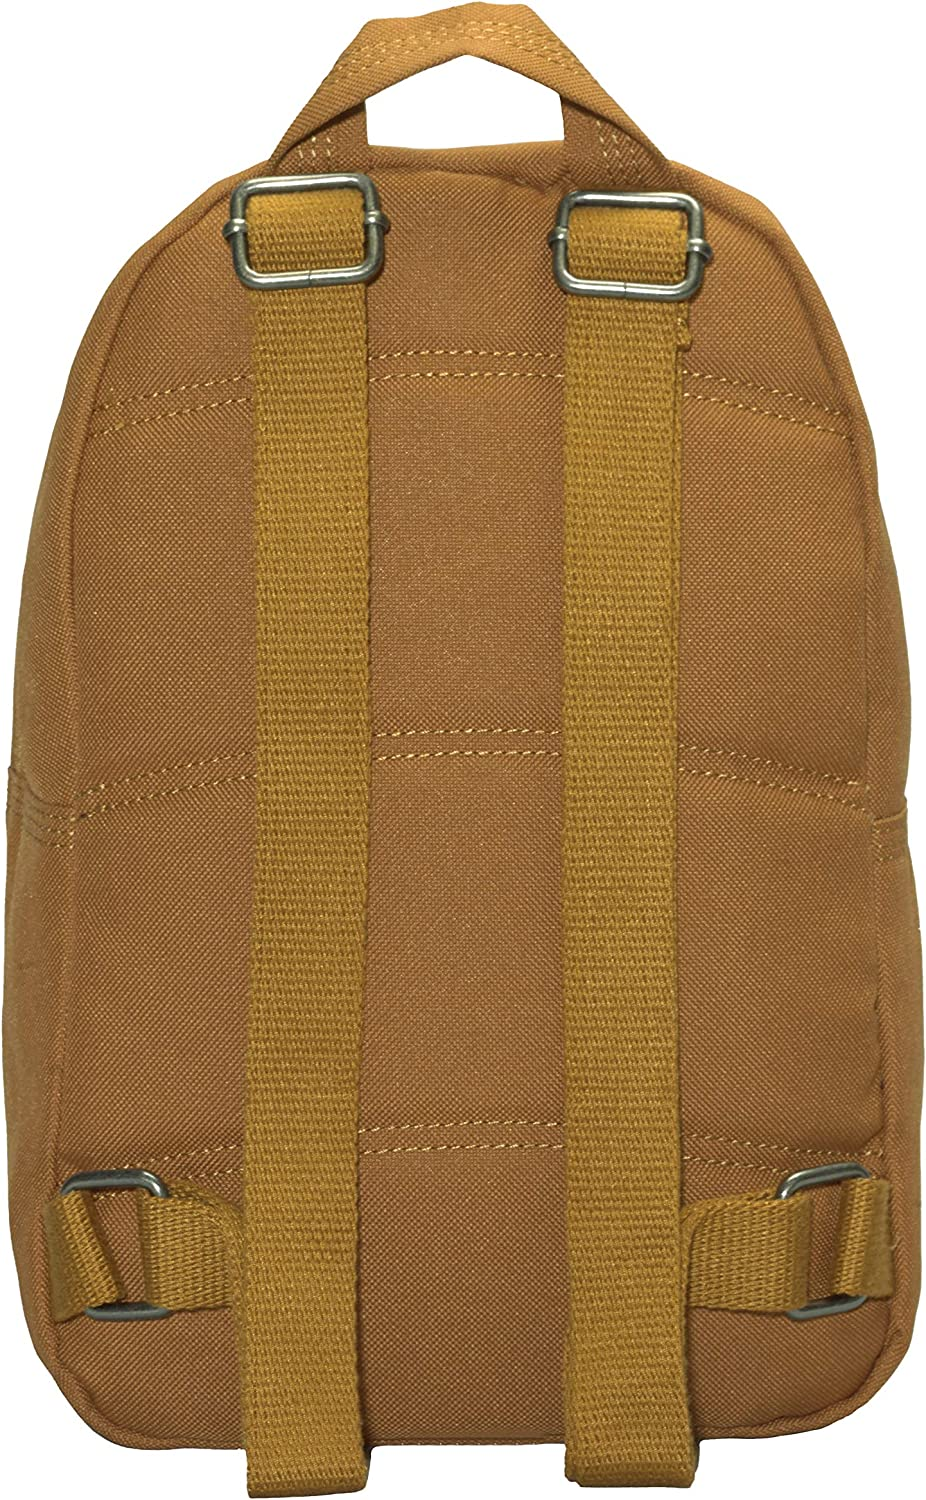 Everyday Essentials Daypack for Men and Women Carhartt Mini Backpack Duck Camo